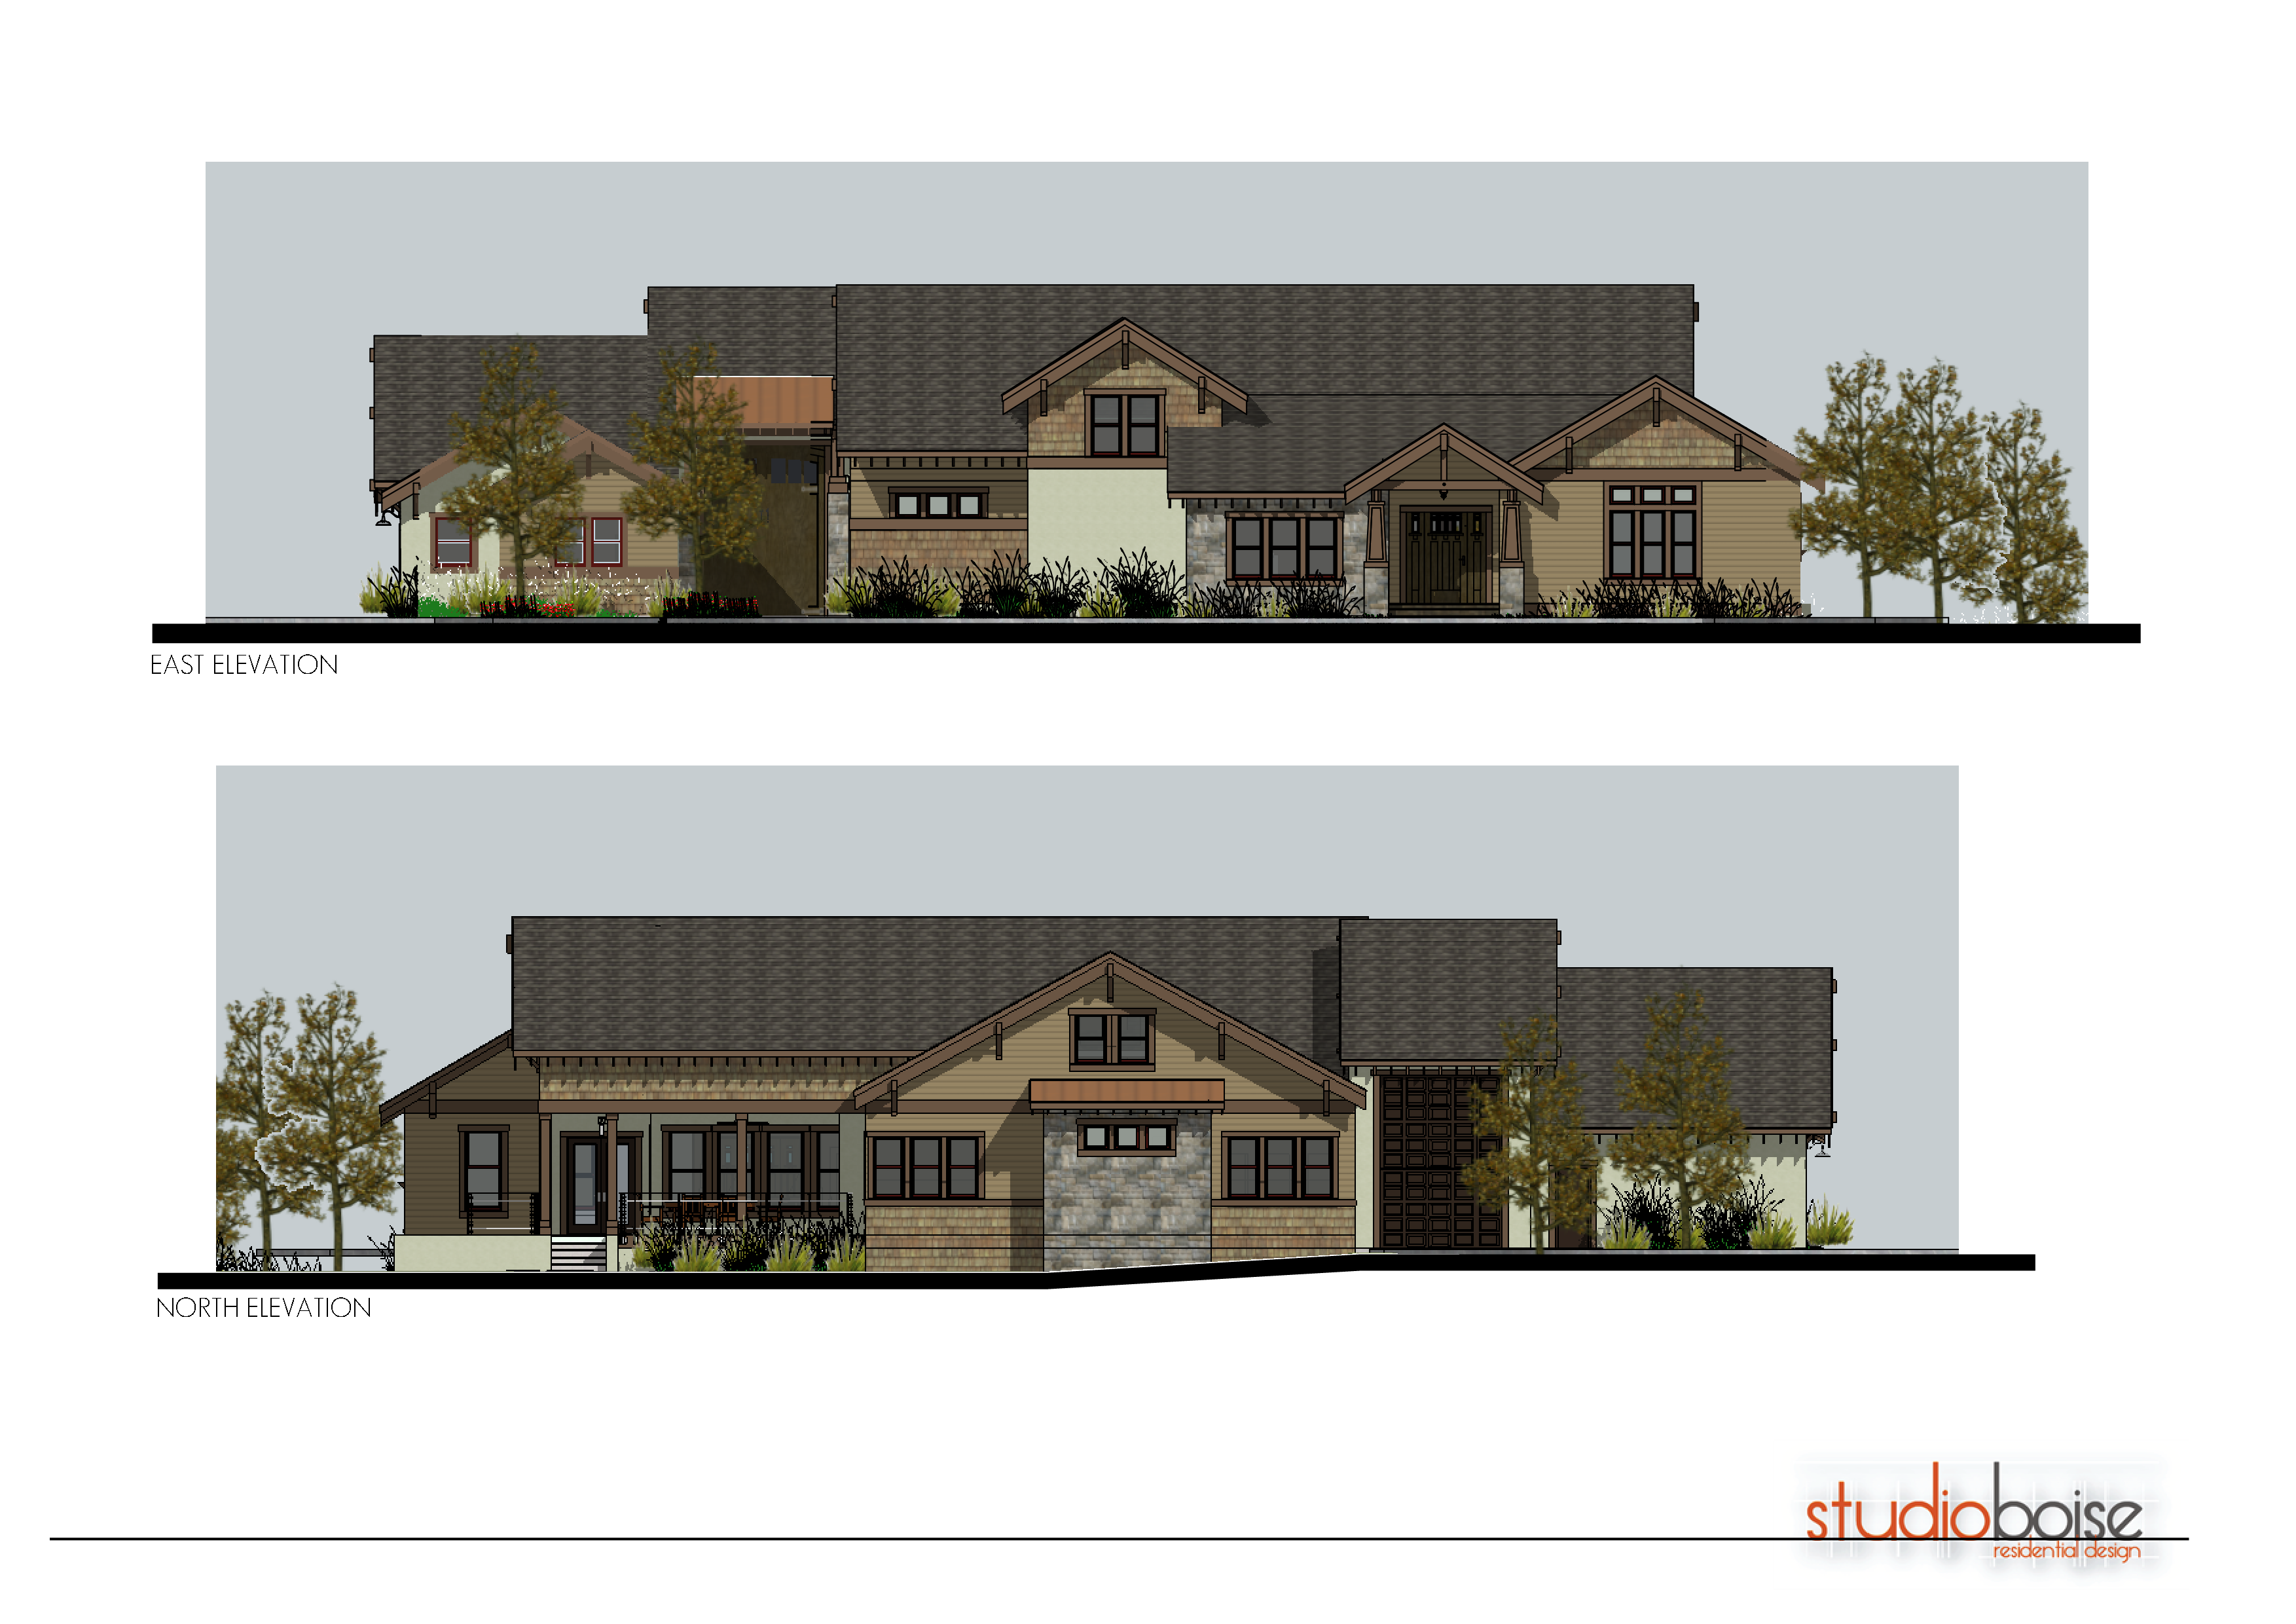 Twin falls home 8 studio boise residential design for Twin home plans